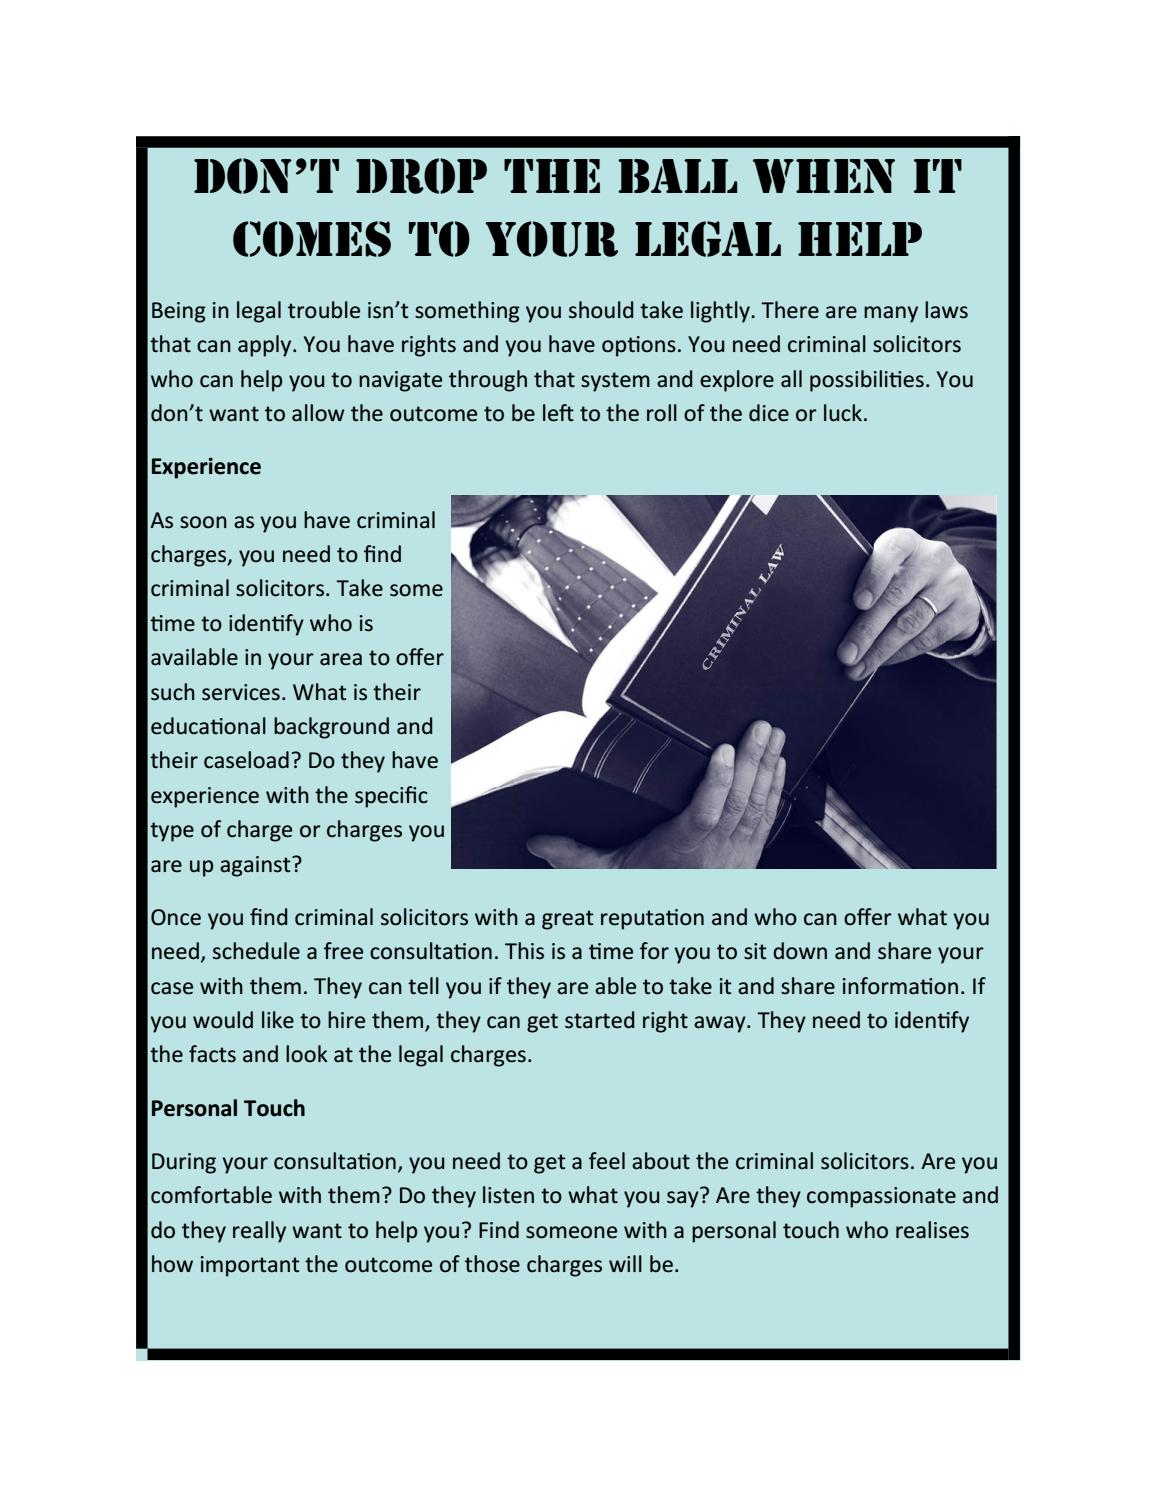 Don't Drop the Ball when it Comes to your Legal Help by M & A